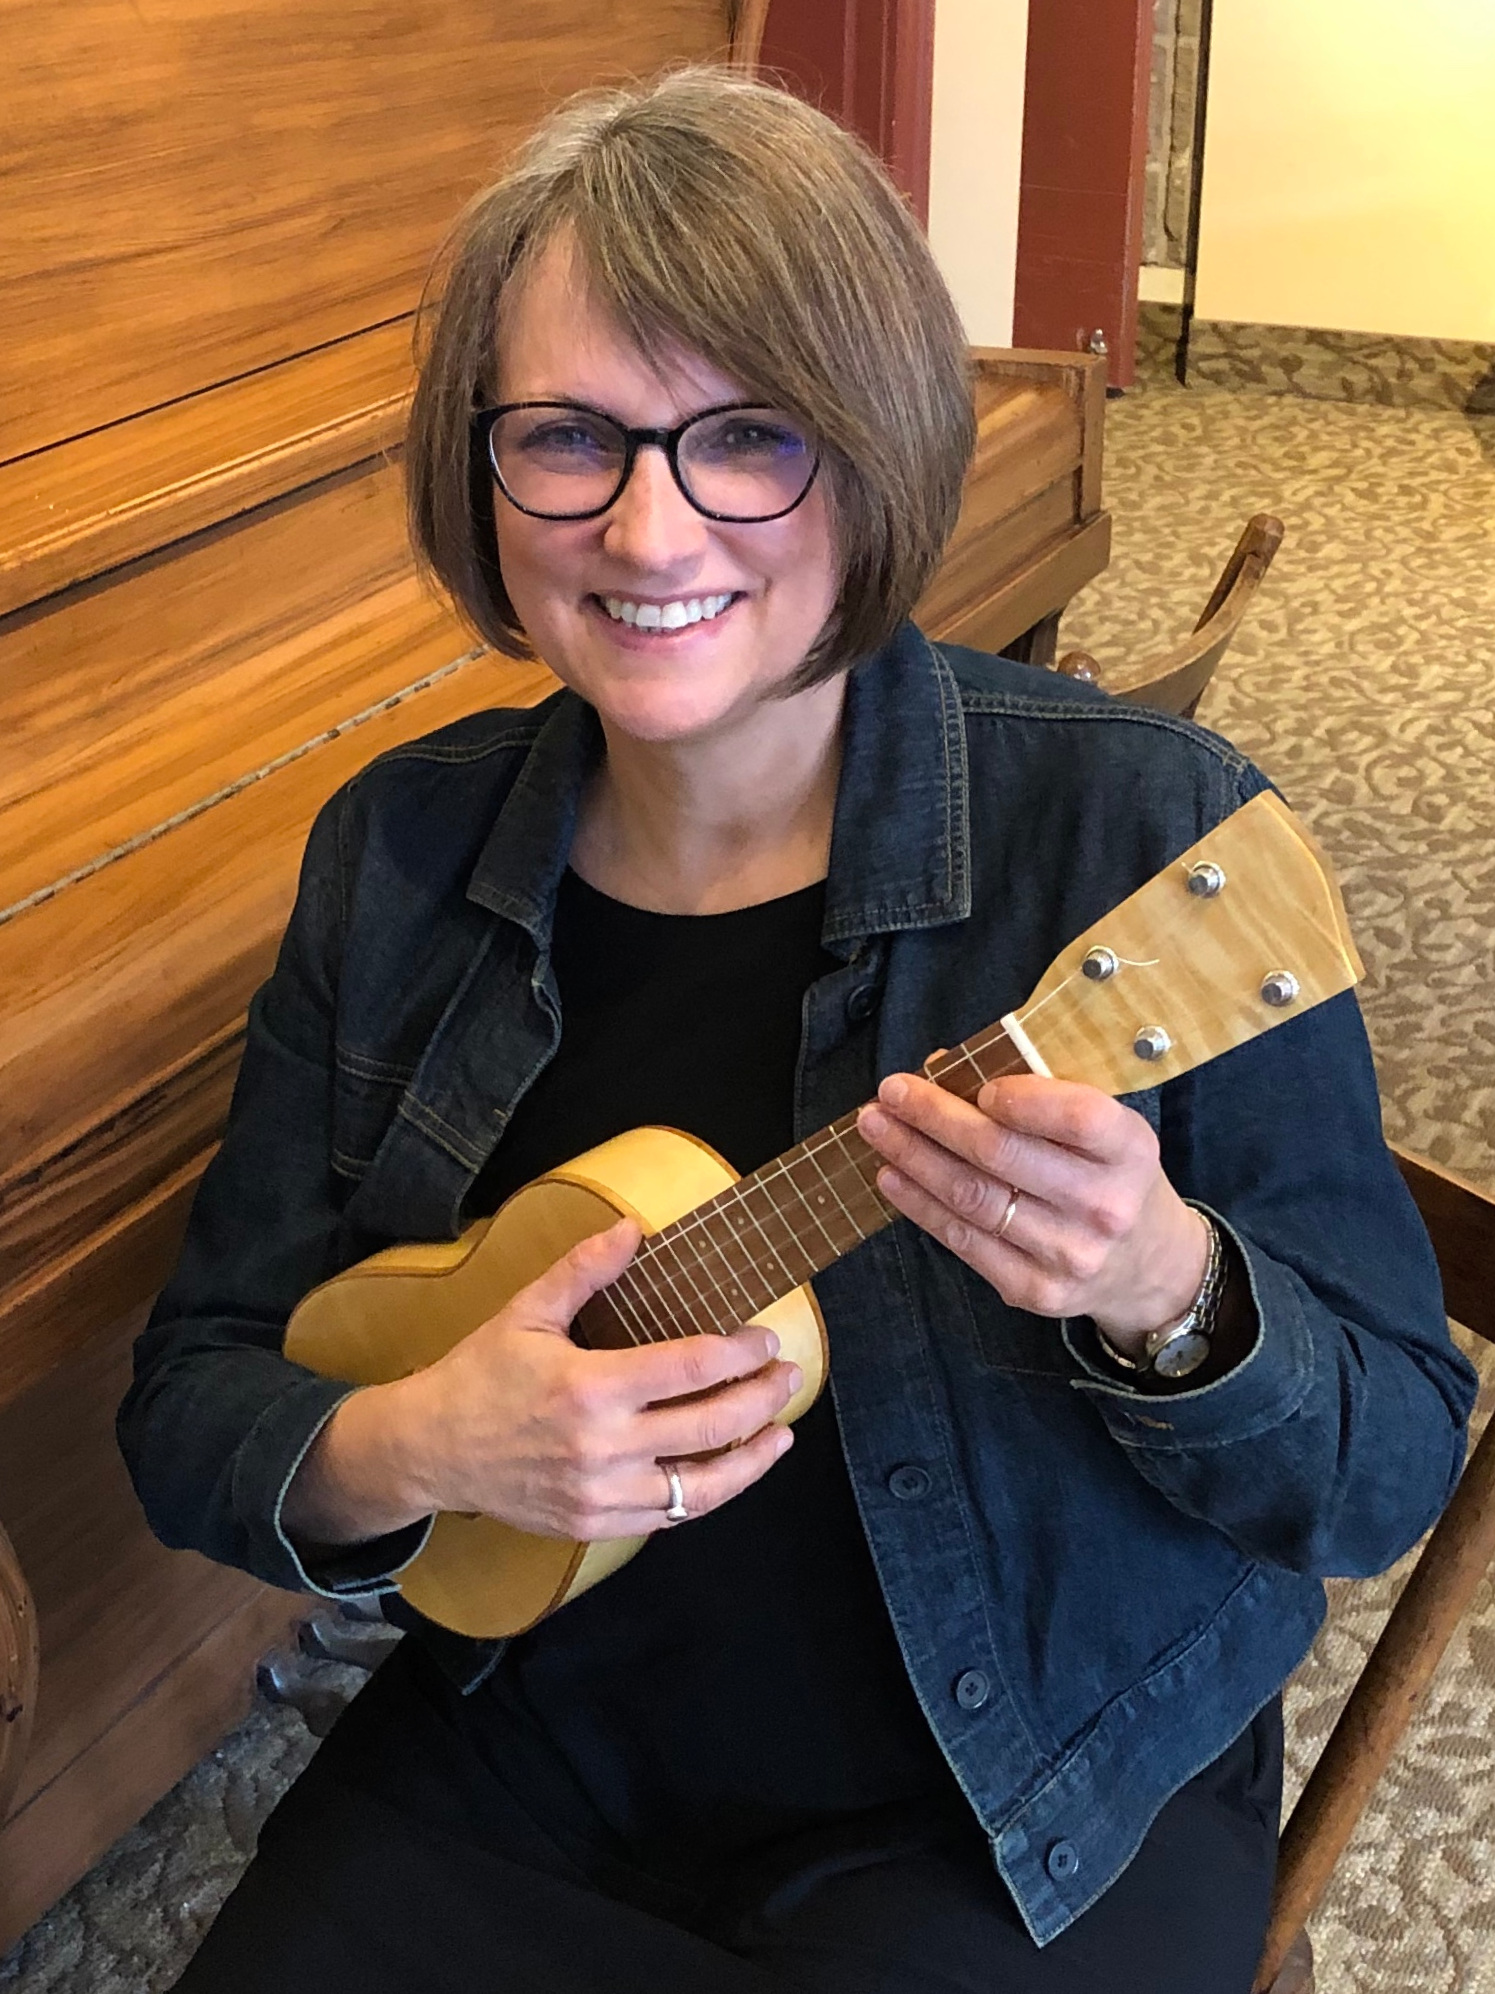 """Learning the ukulele is the beginning of a wonderous journey!"" - - Angela Dwyer"